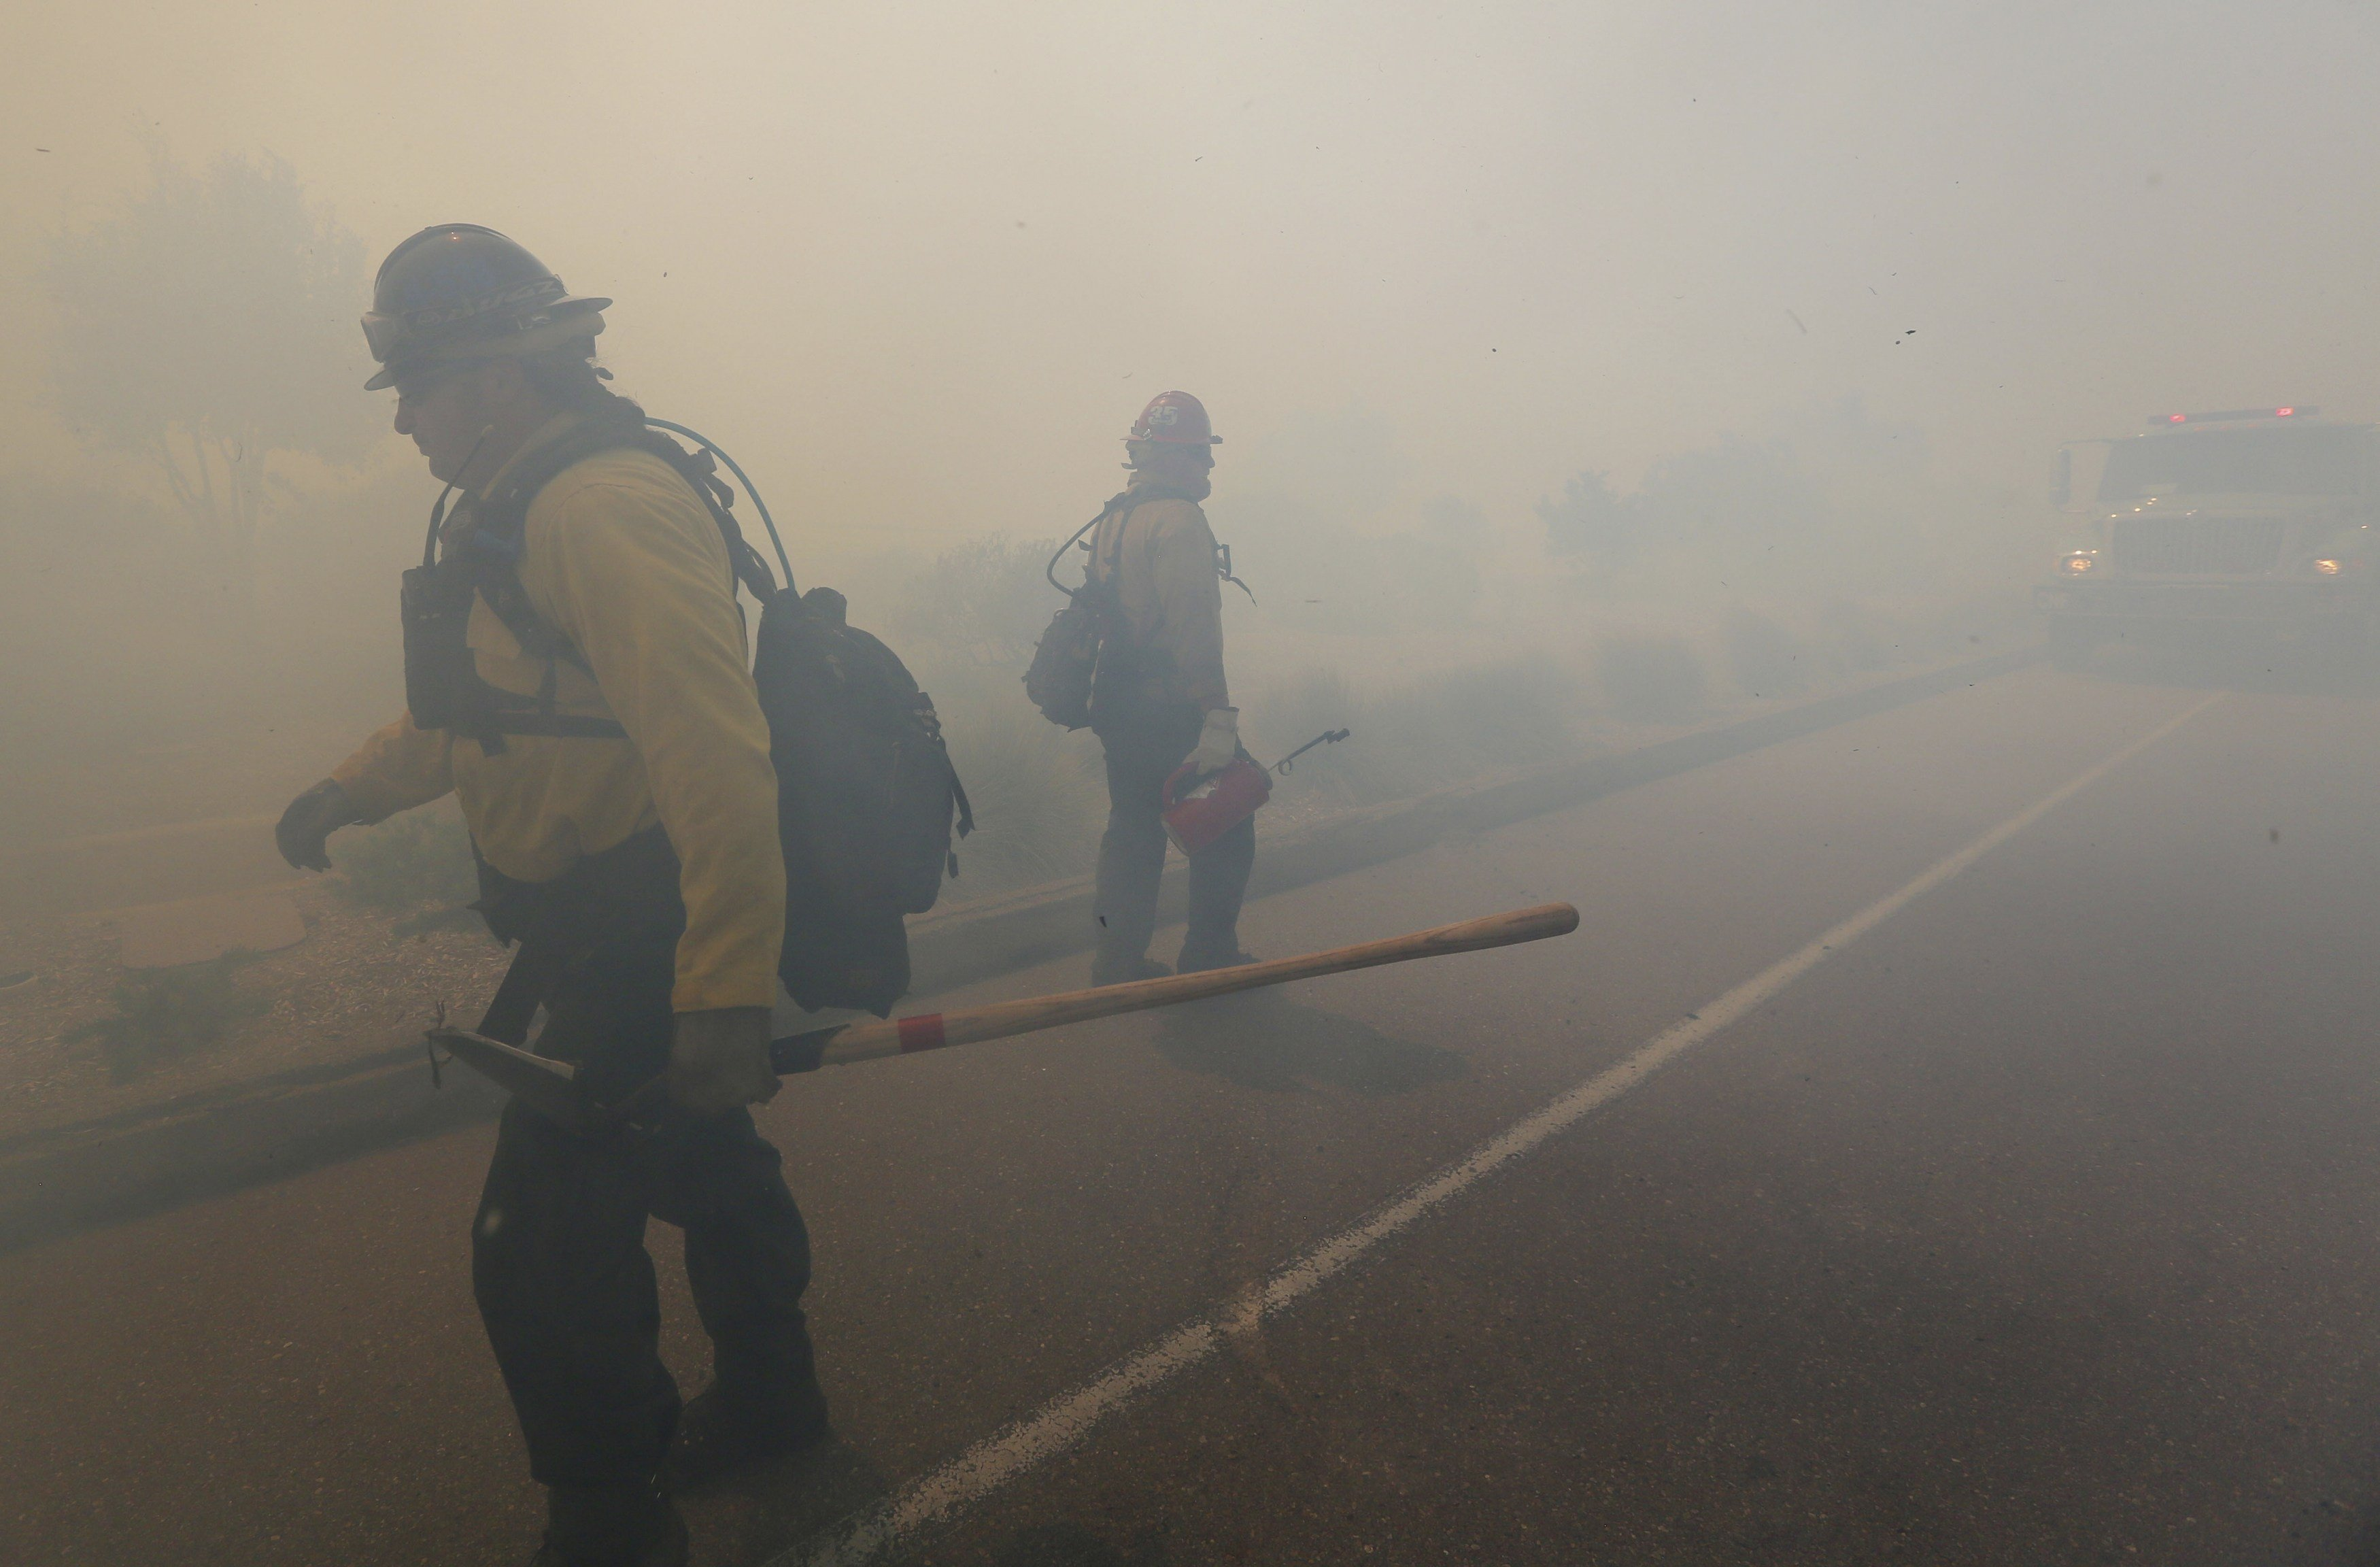 Firefighters battle the fire near San Diego on May 13, 2014.